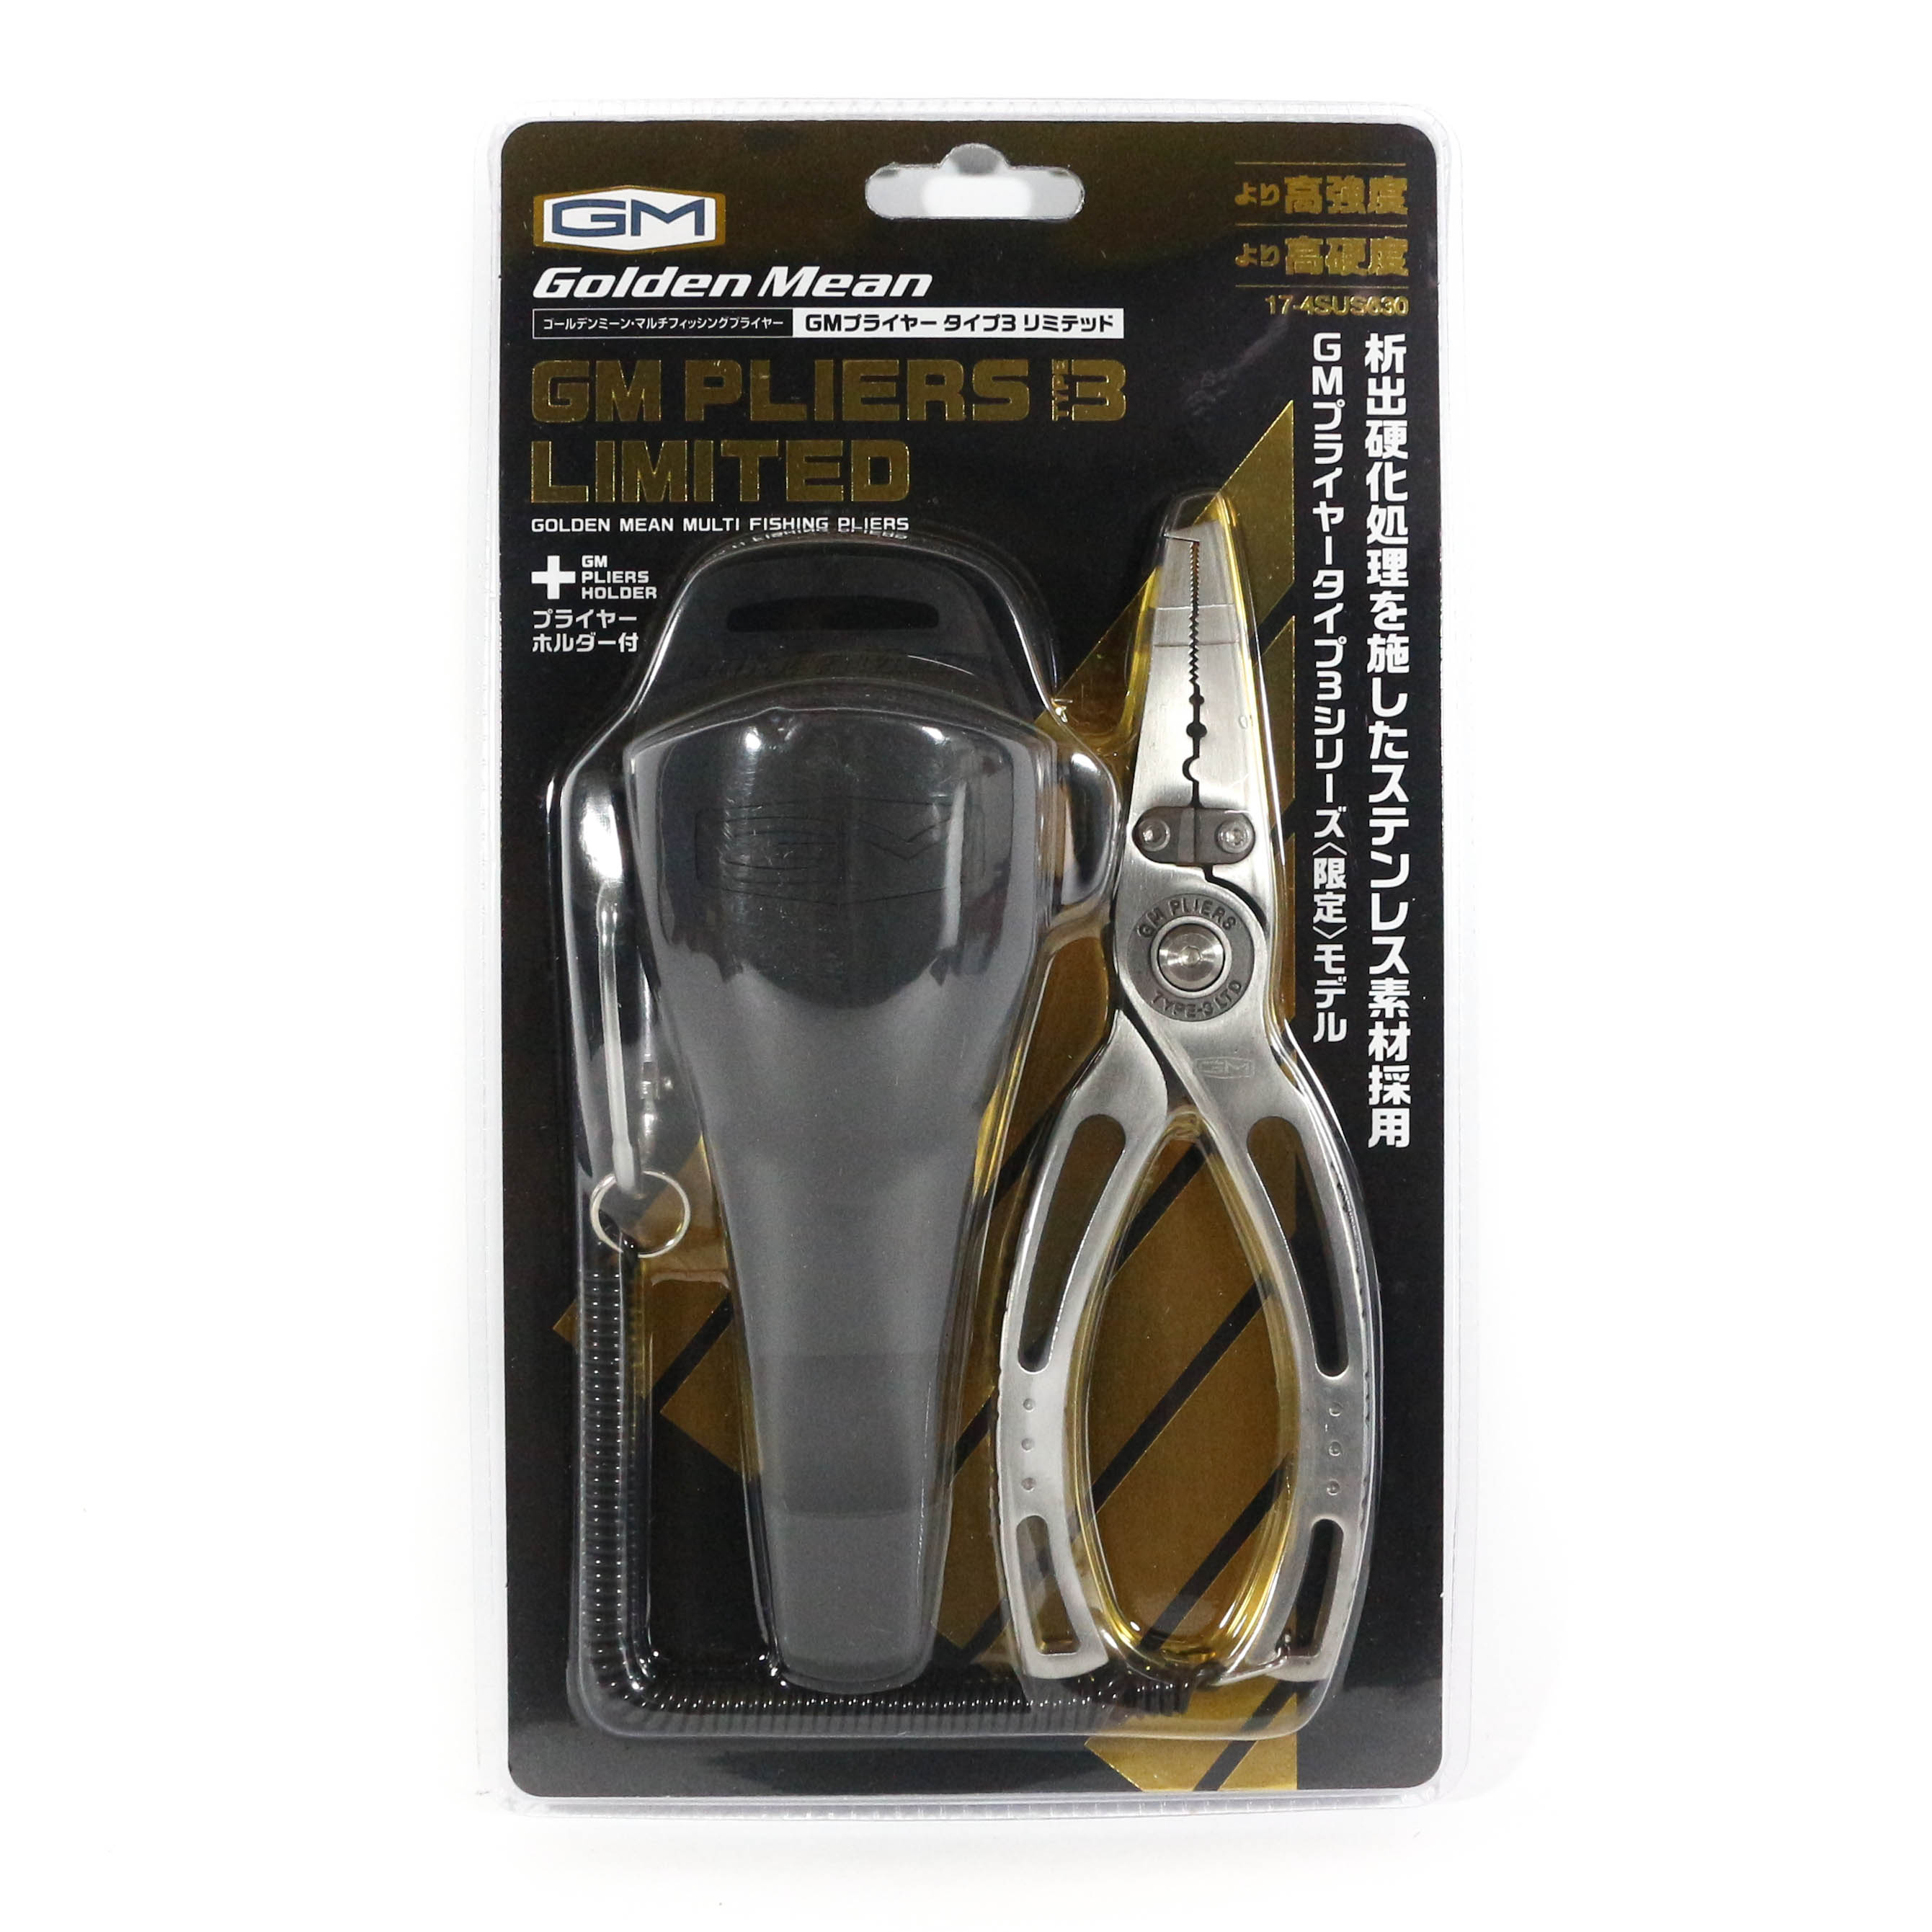 Golden Mean Fishing Pliers and Holder Type 3 Limited (4323)